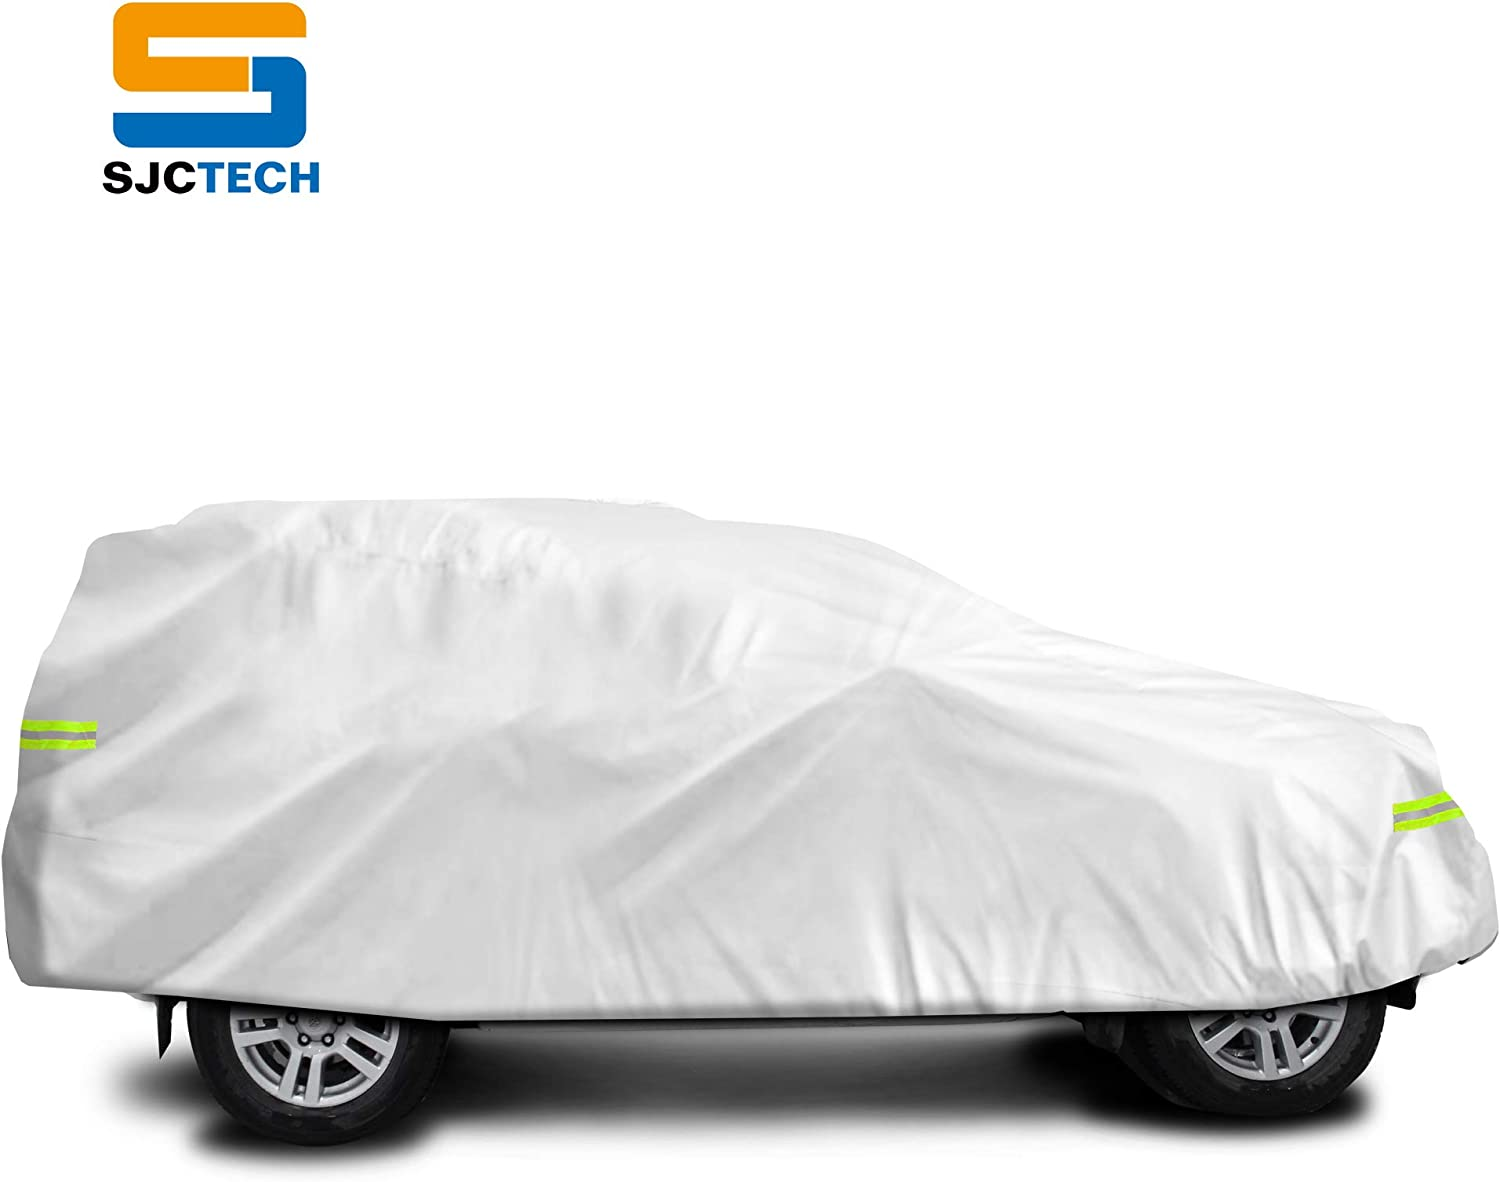 210x70x47 in SJC Full Car Cover Universal Fit Up to Sedan//Car Automobile Cover TC Silver Waterproof Protection for Dust Rain Sun Snow Outdoor Auto Cover